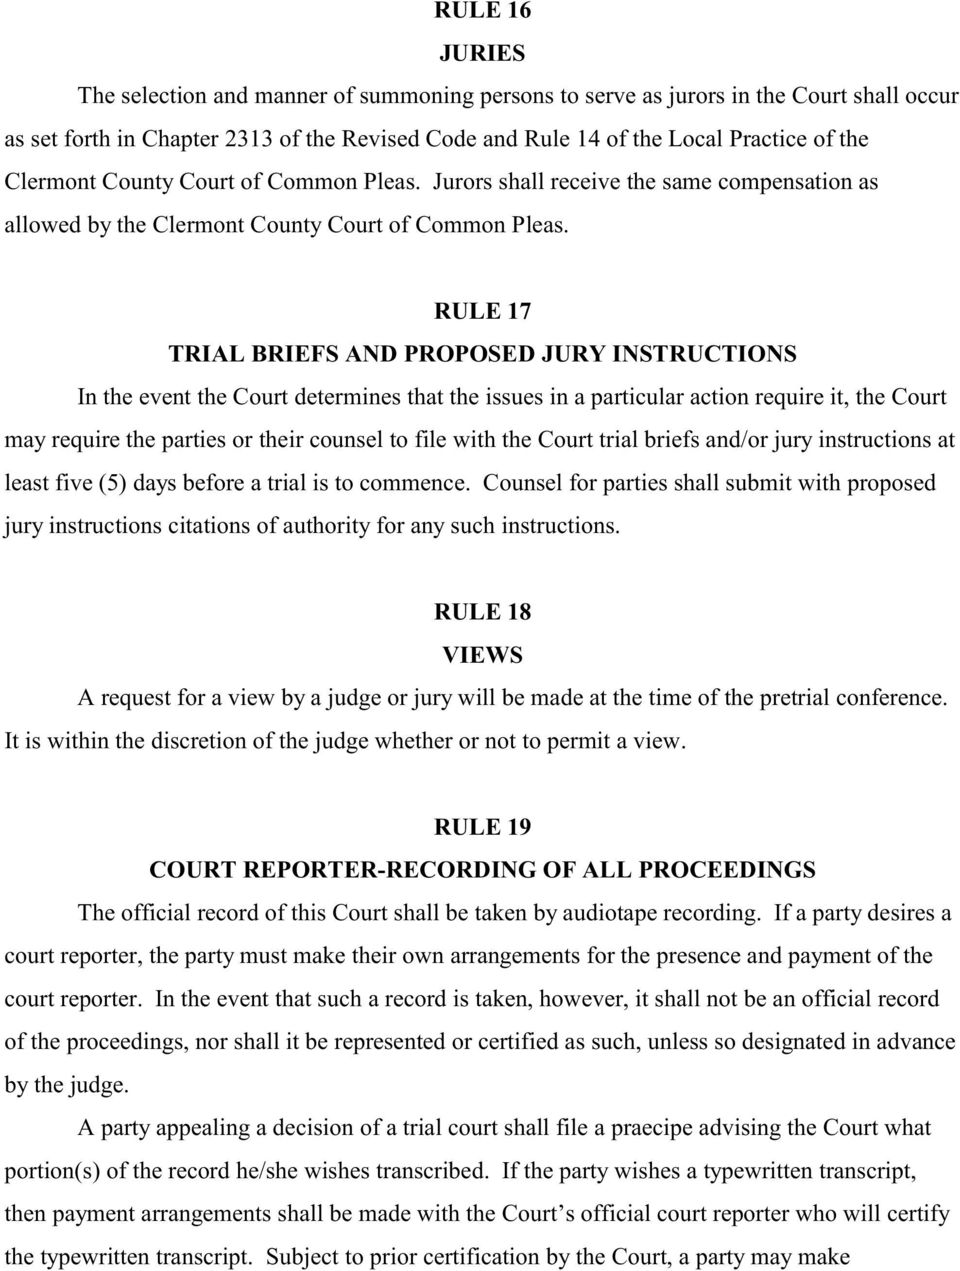 RULE 17 TRIAL BRIEFS AND PROPOSED JURY INSTRUCTIONS In the event the Court determines that the issues in a particular action require it, the Court may require the parties or their counsel to file